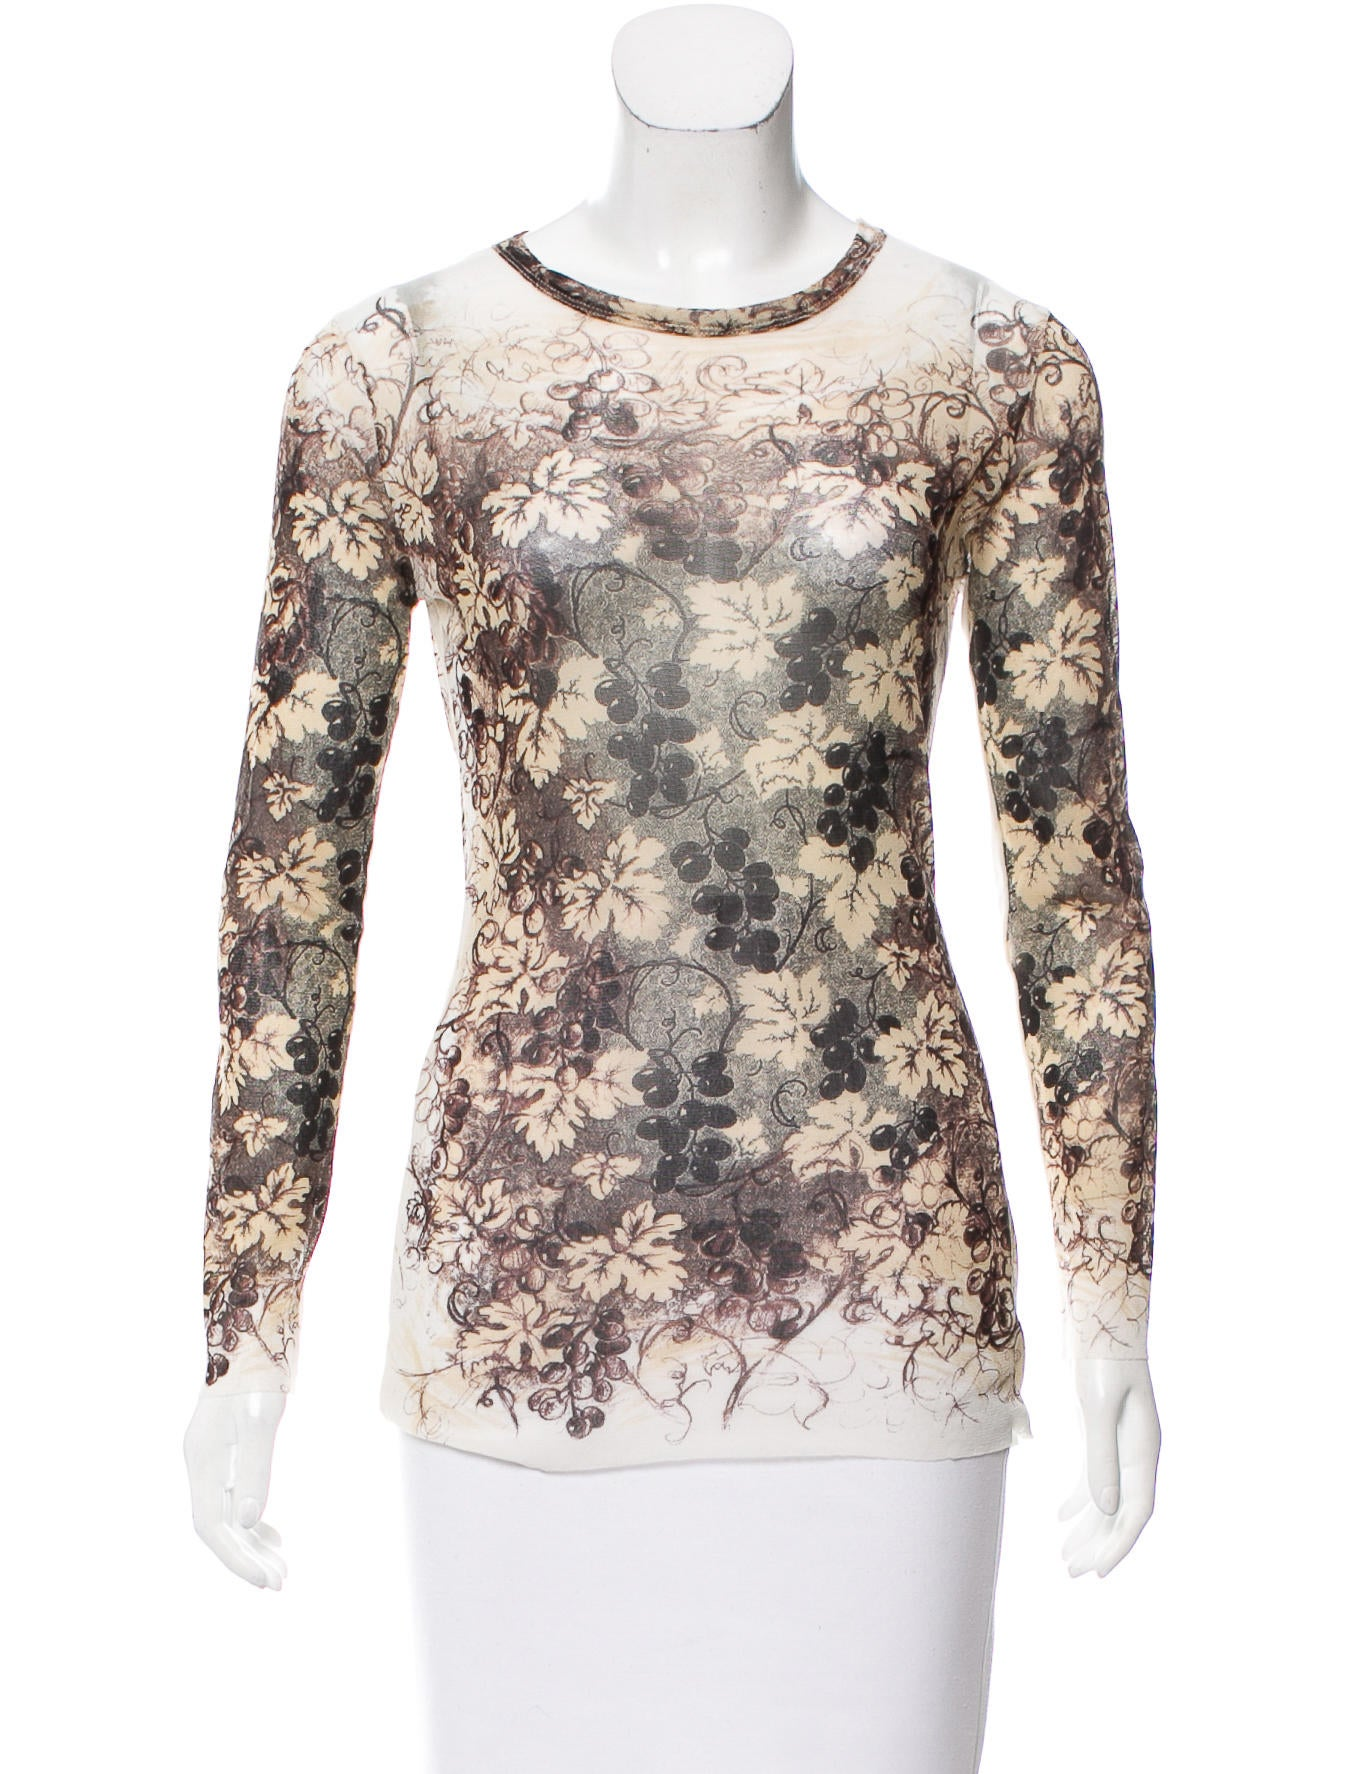 Jean paul gaultier classique grape printed semi sheer top for Jean paul gaultier clothing